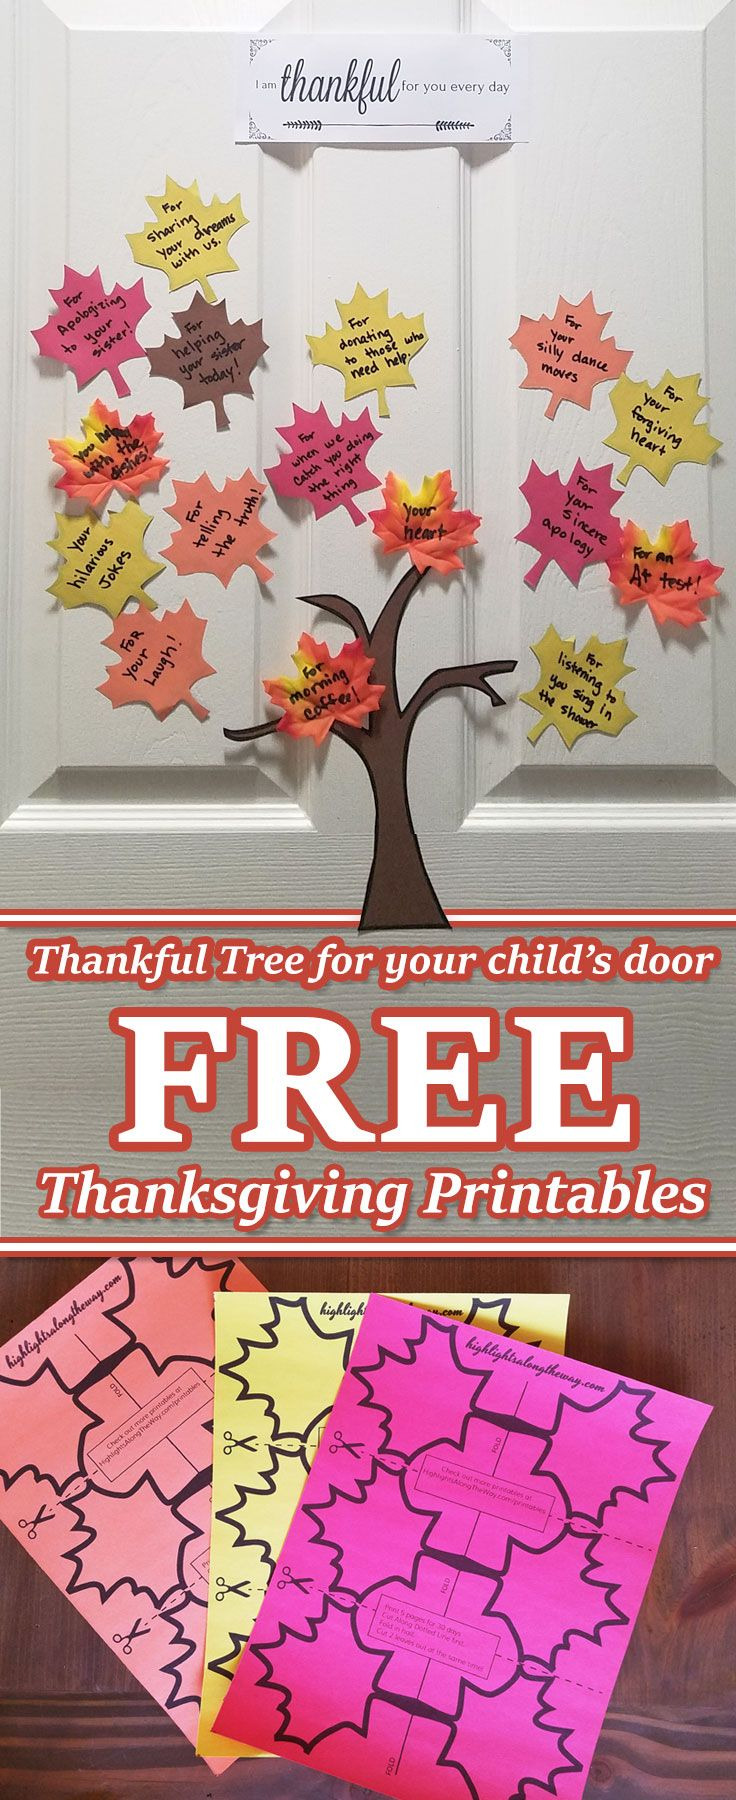 Thanksgiving Tree Printables. Free Printable tree and leaf cut outs for a Thankful tree to put on your child's door. #Thanksgiving #traditions #thanksgivingprintables #freeprintables